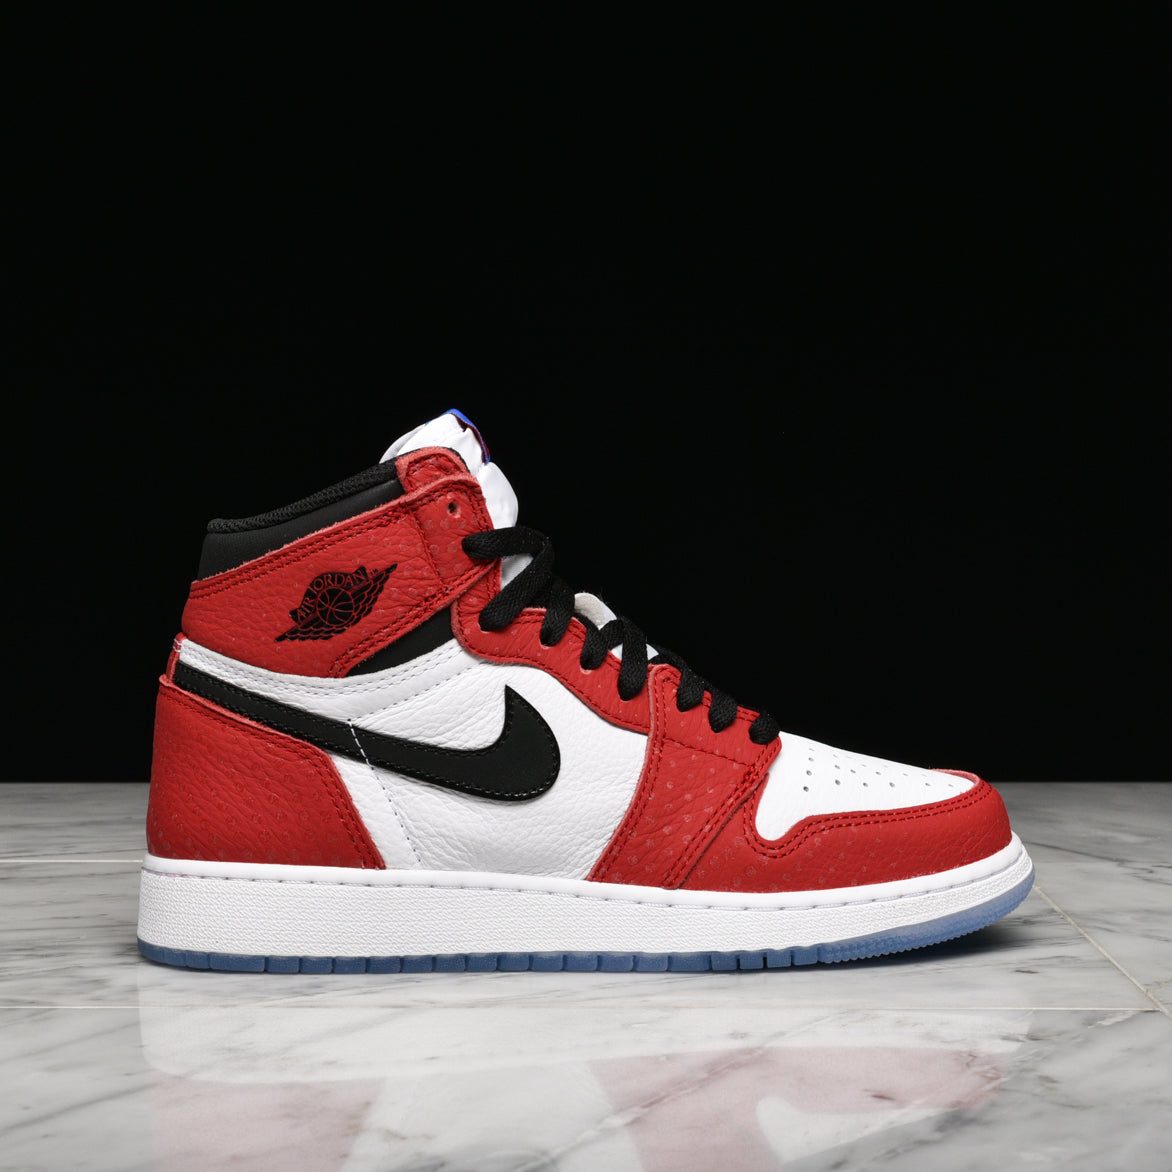 5f56d40ad43 AIR JORDAN 1 RETRO HIGH OG (GS)